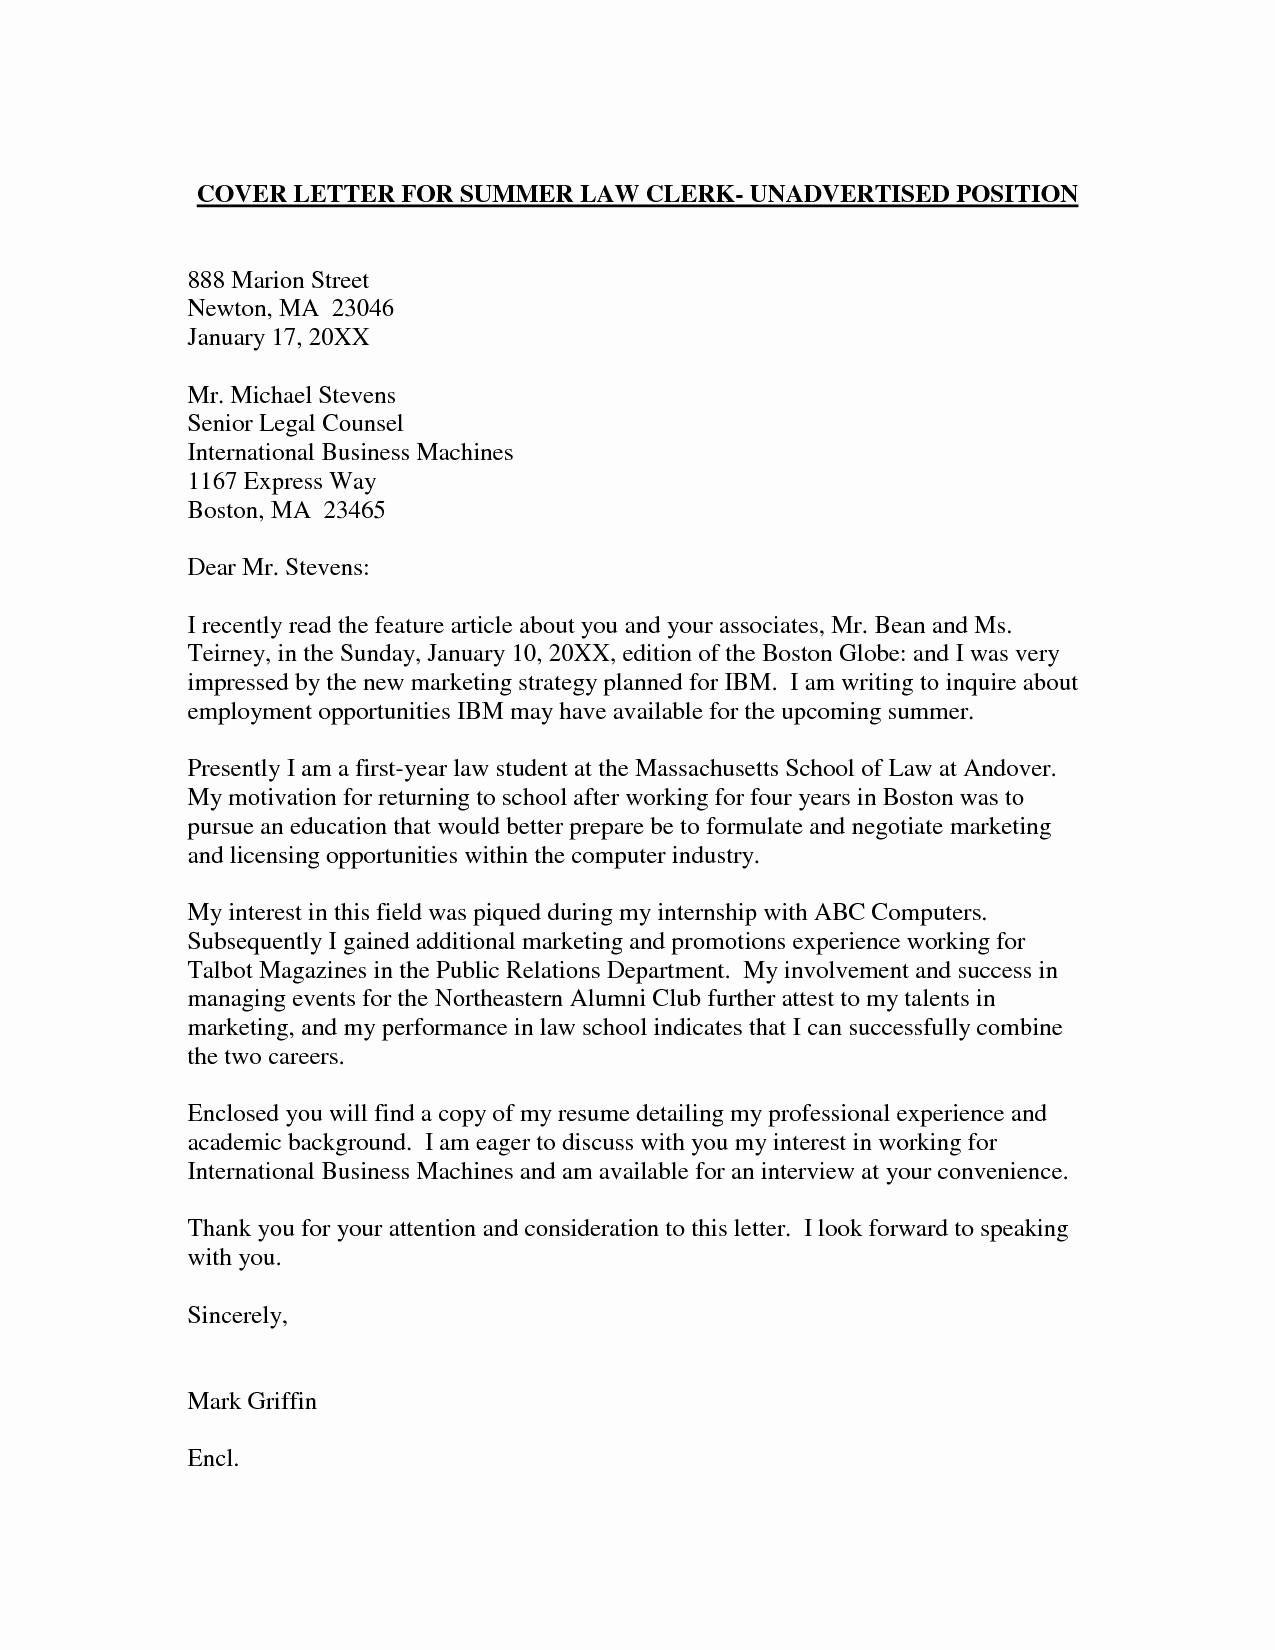 Cover Letter for Employment New Employment Cover Letter Template Wondercover Letter